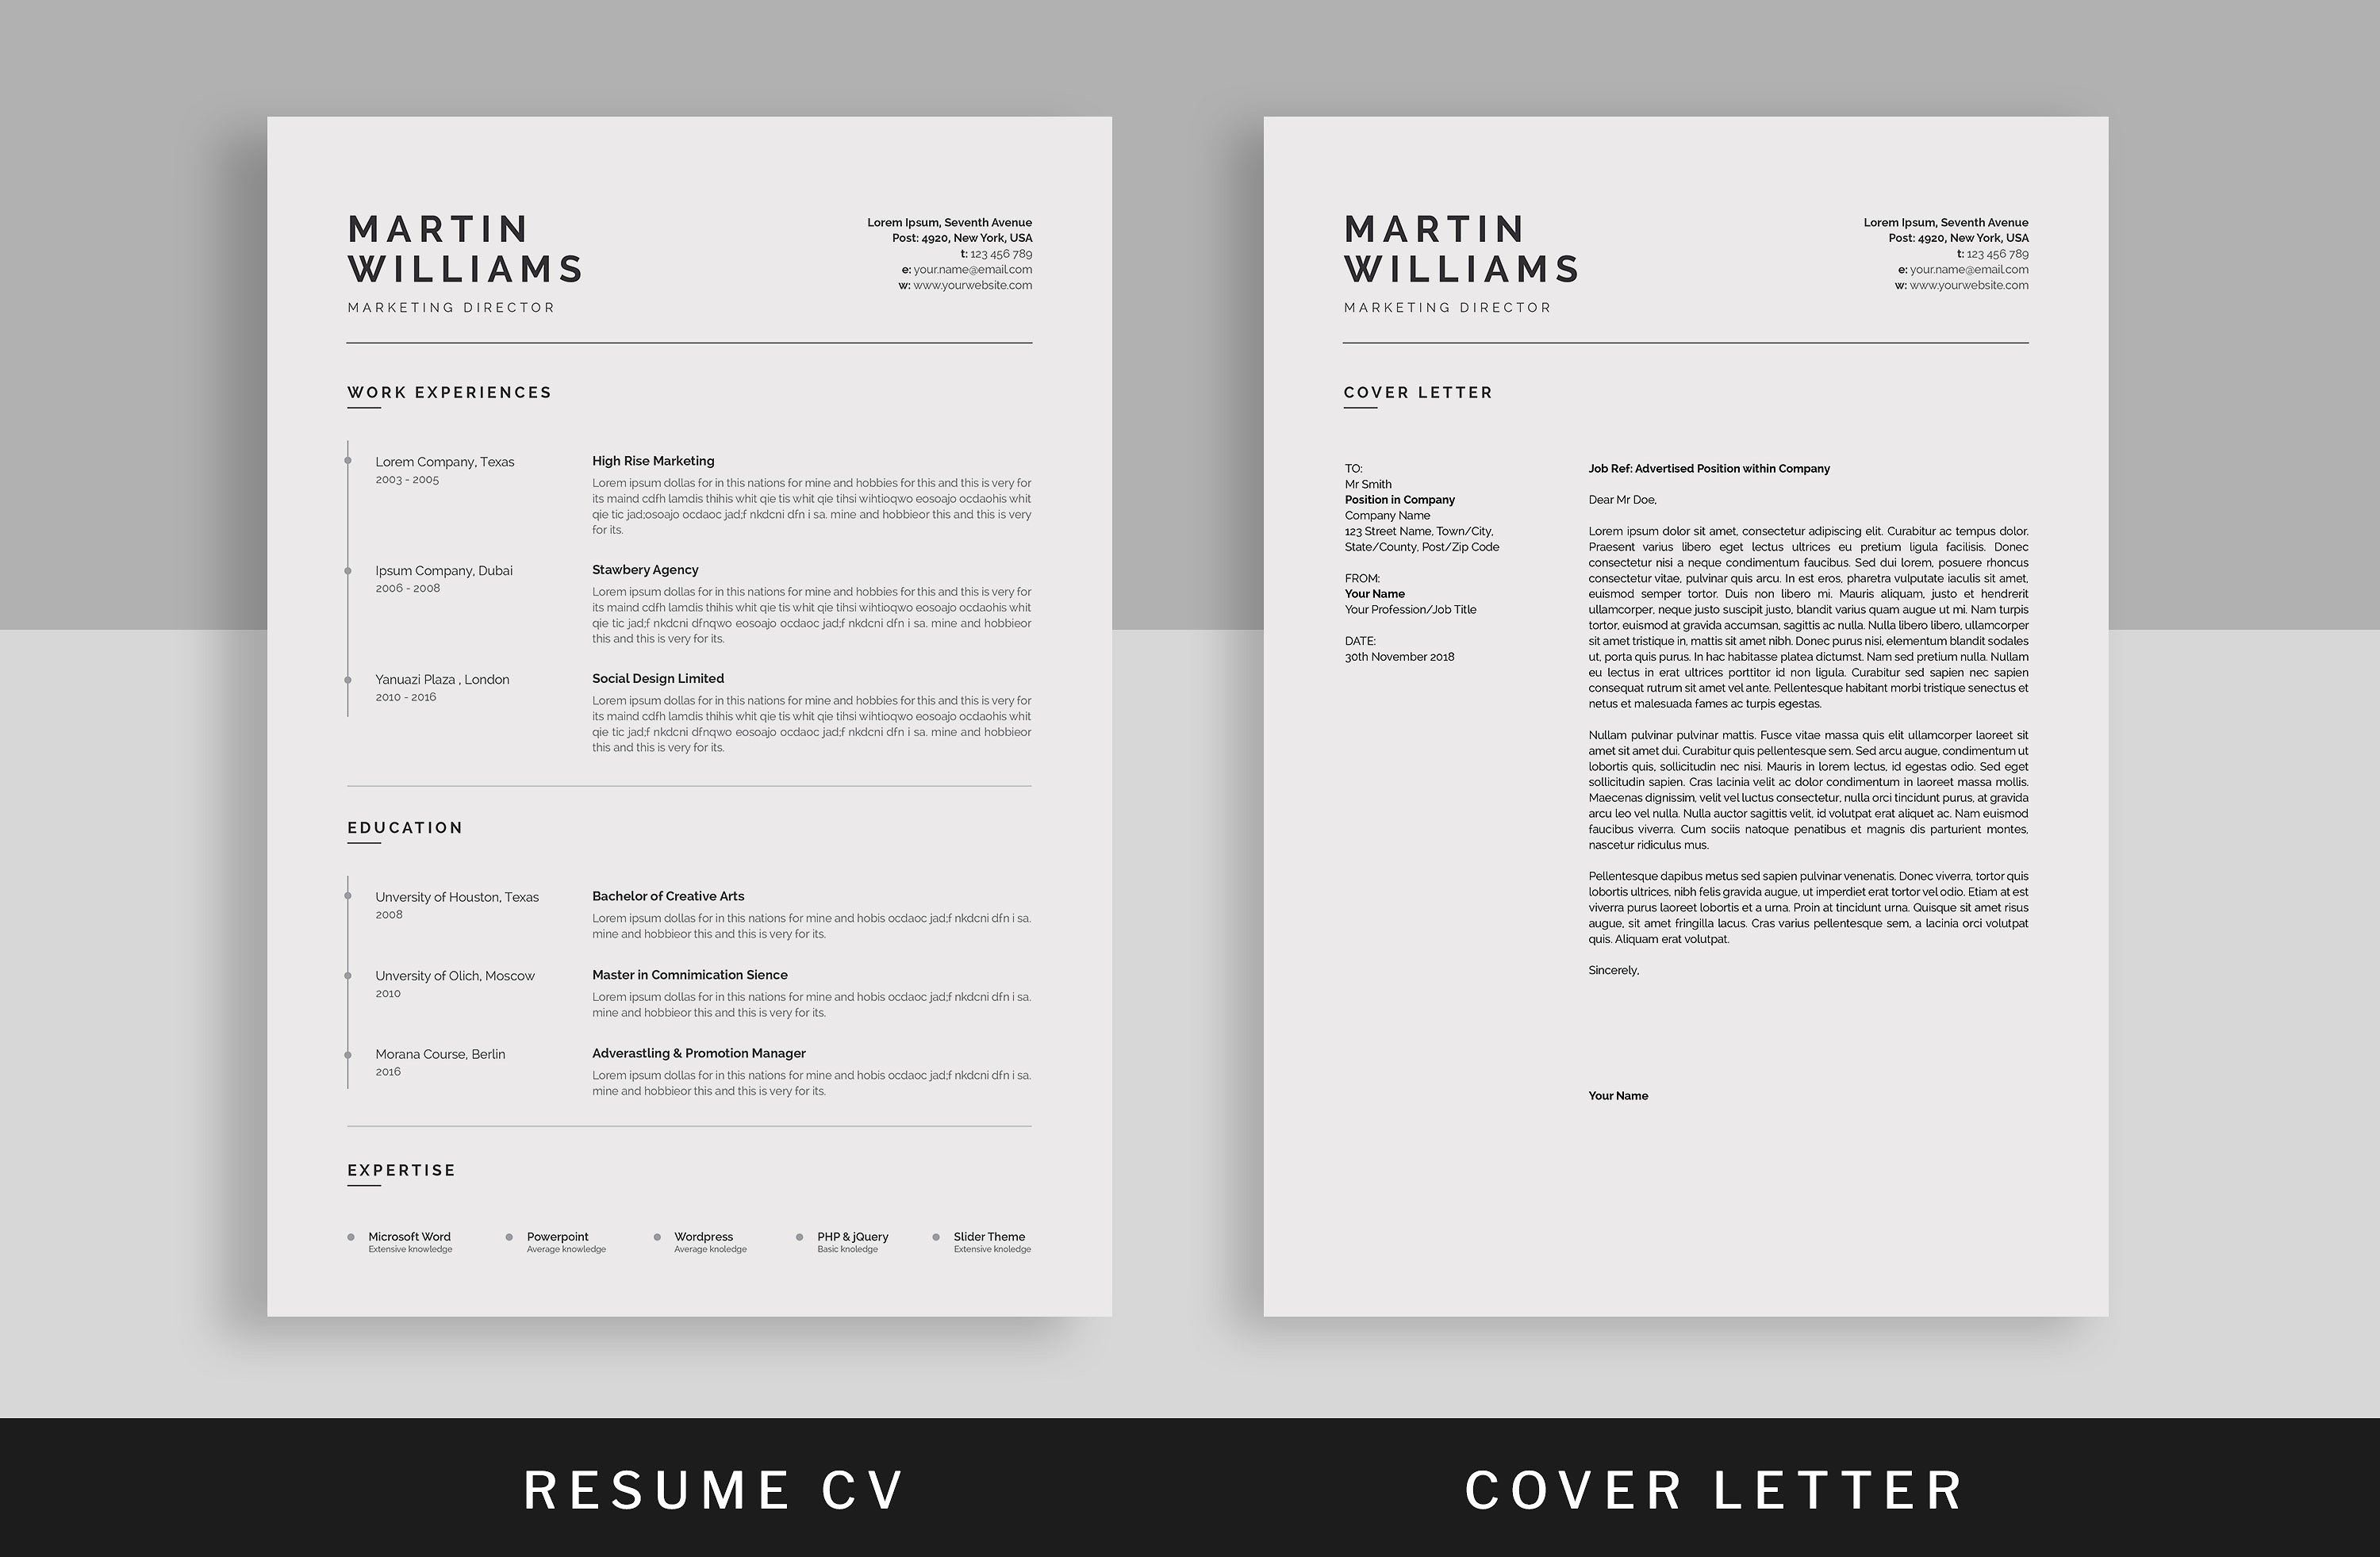 Resume Cv Minimalist Resume Template Indesign Resume Template Resume Design Template